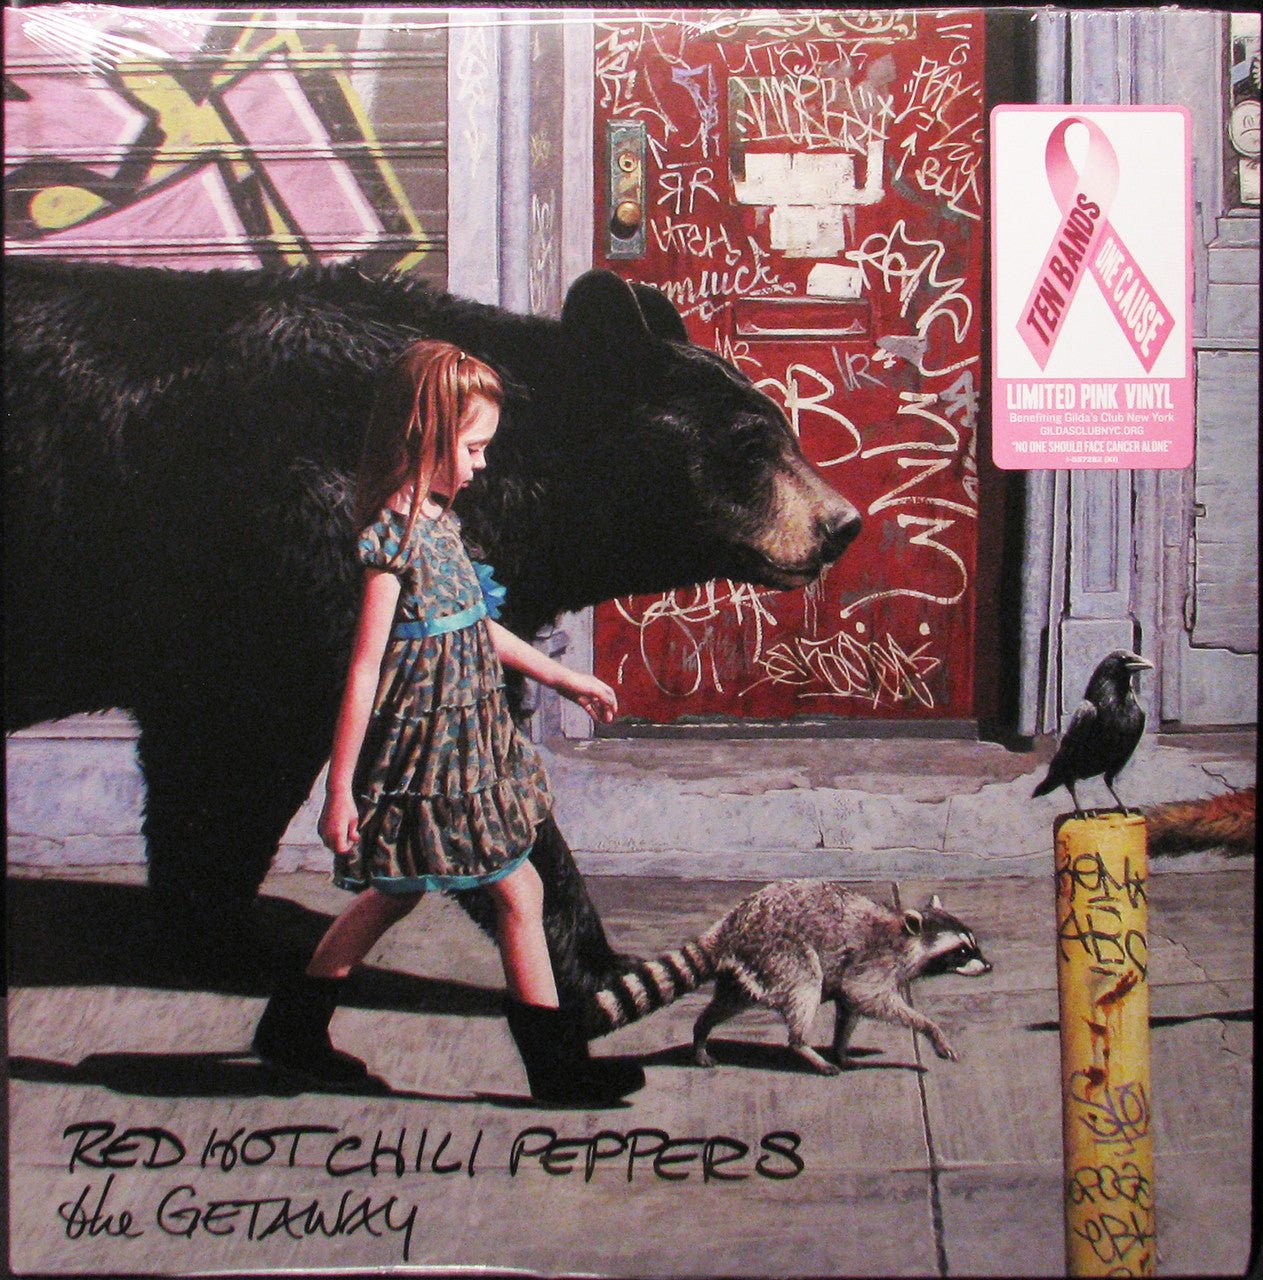 Red Hot Chili Peppers The Getaway New Vinyl Record